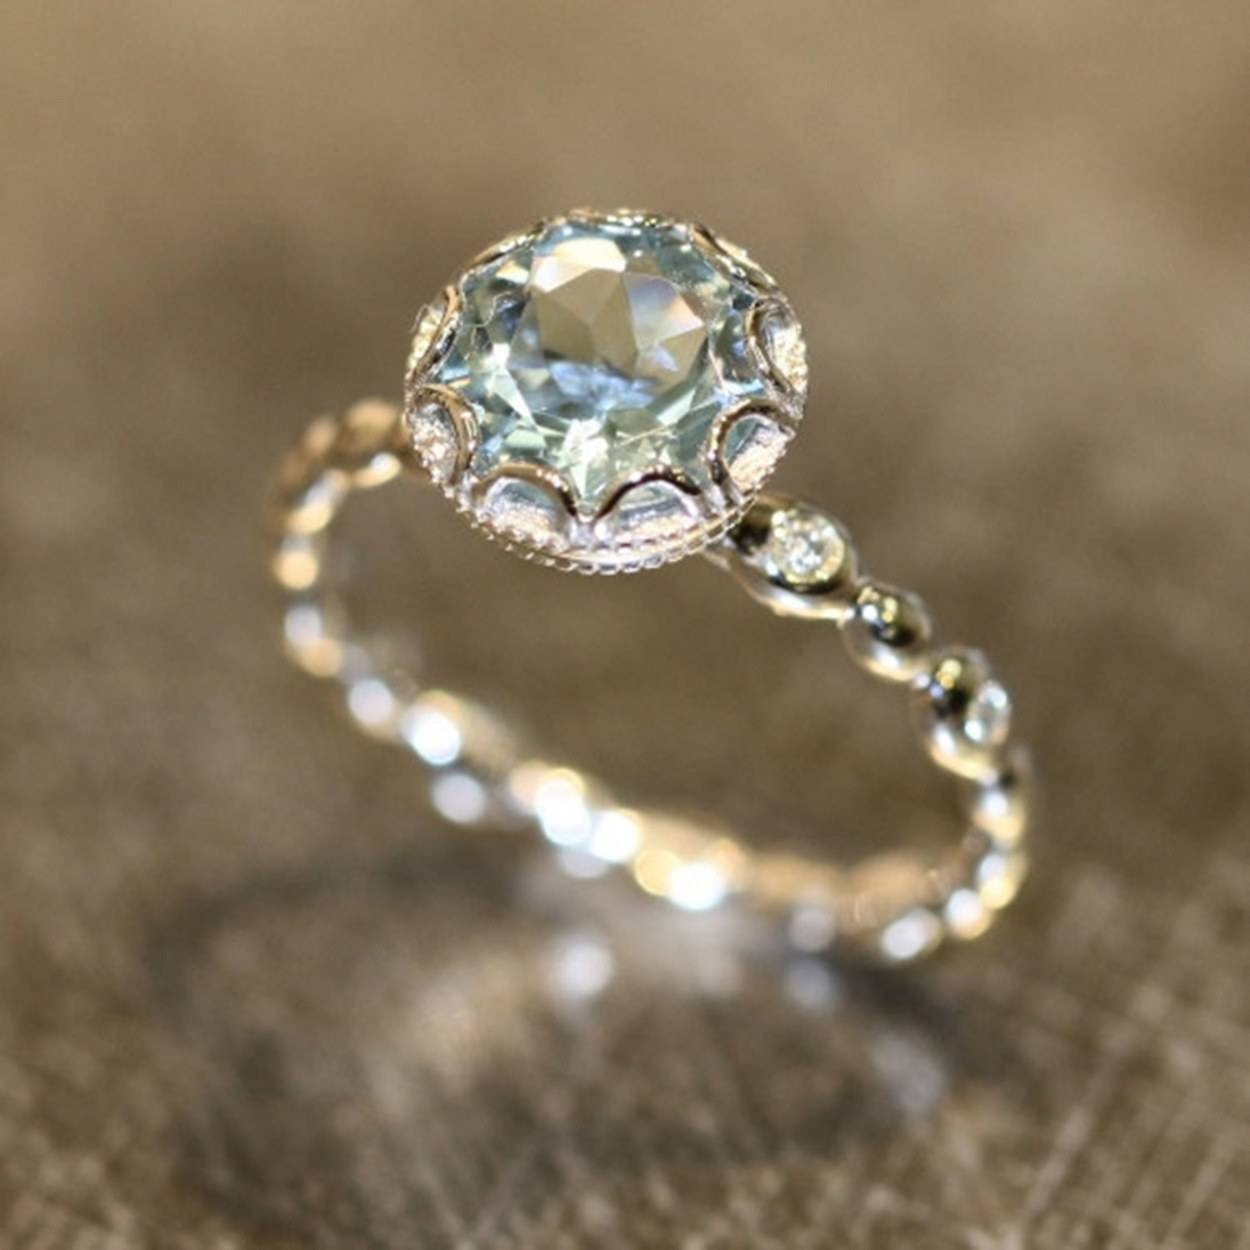 Affordable Engagement Rings Under $1,000 | Glamour In Vintage Irish Engagement Rings (Gallery 11 of 15)